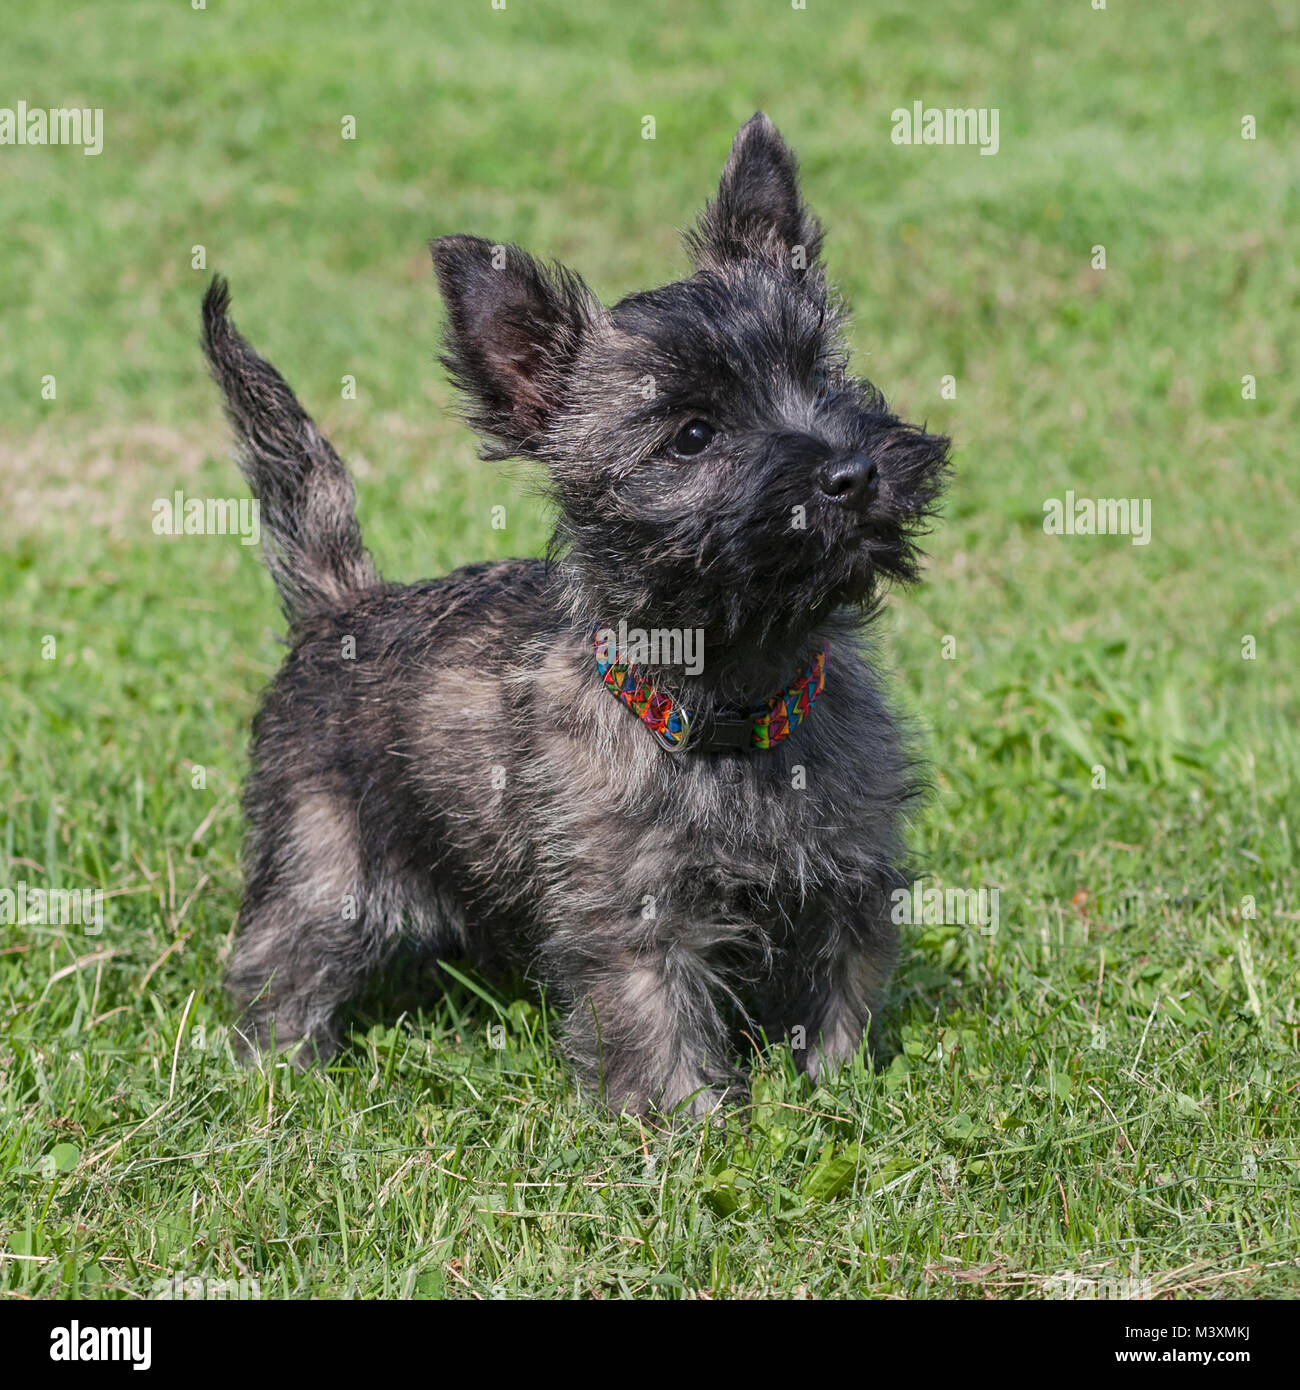 brindle colored cairn terrier puppy posed on a lawn - Stock Image